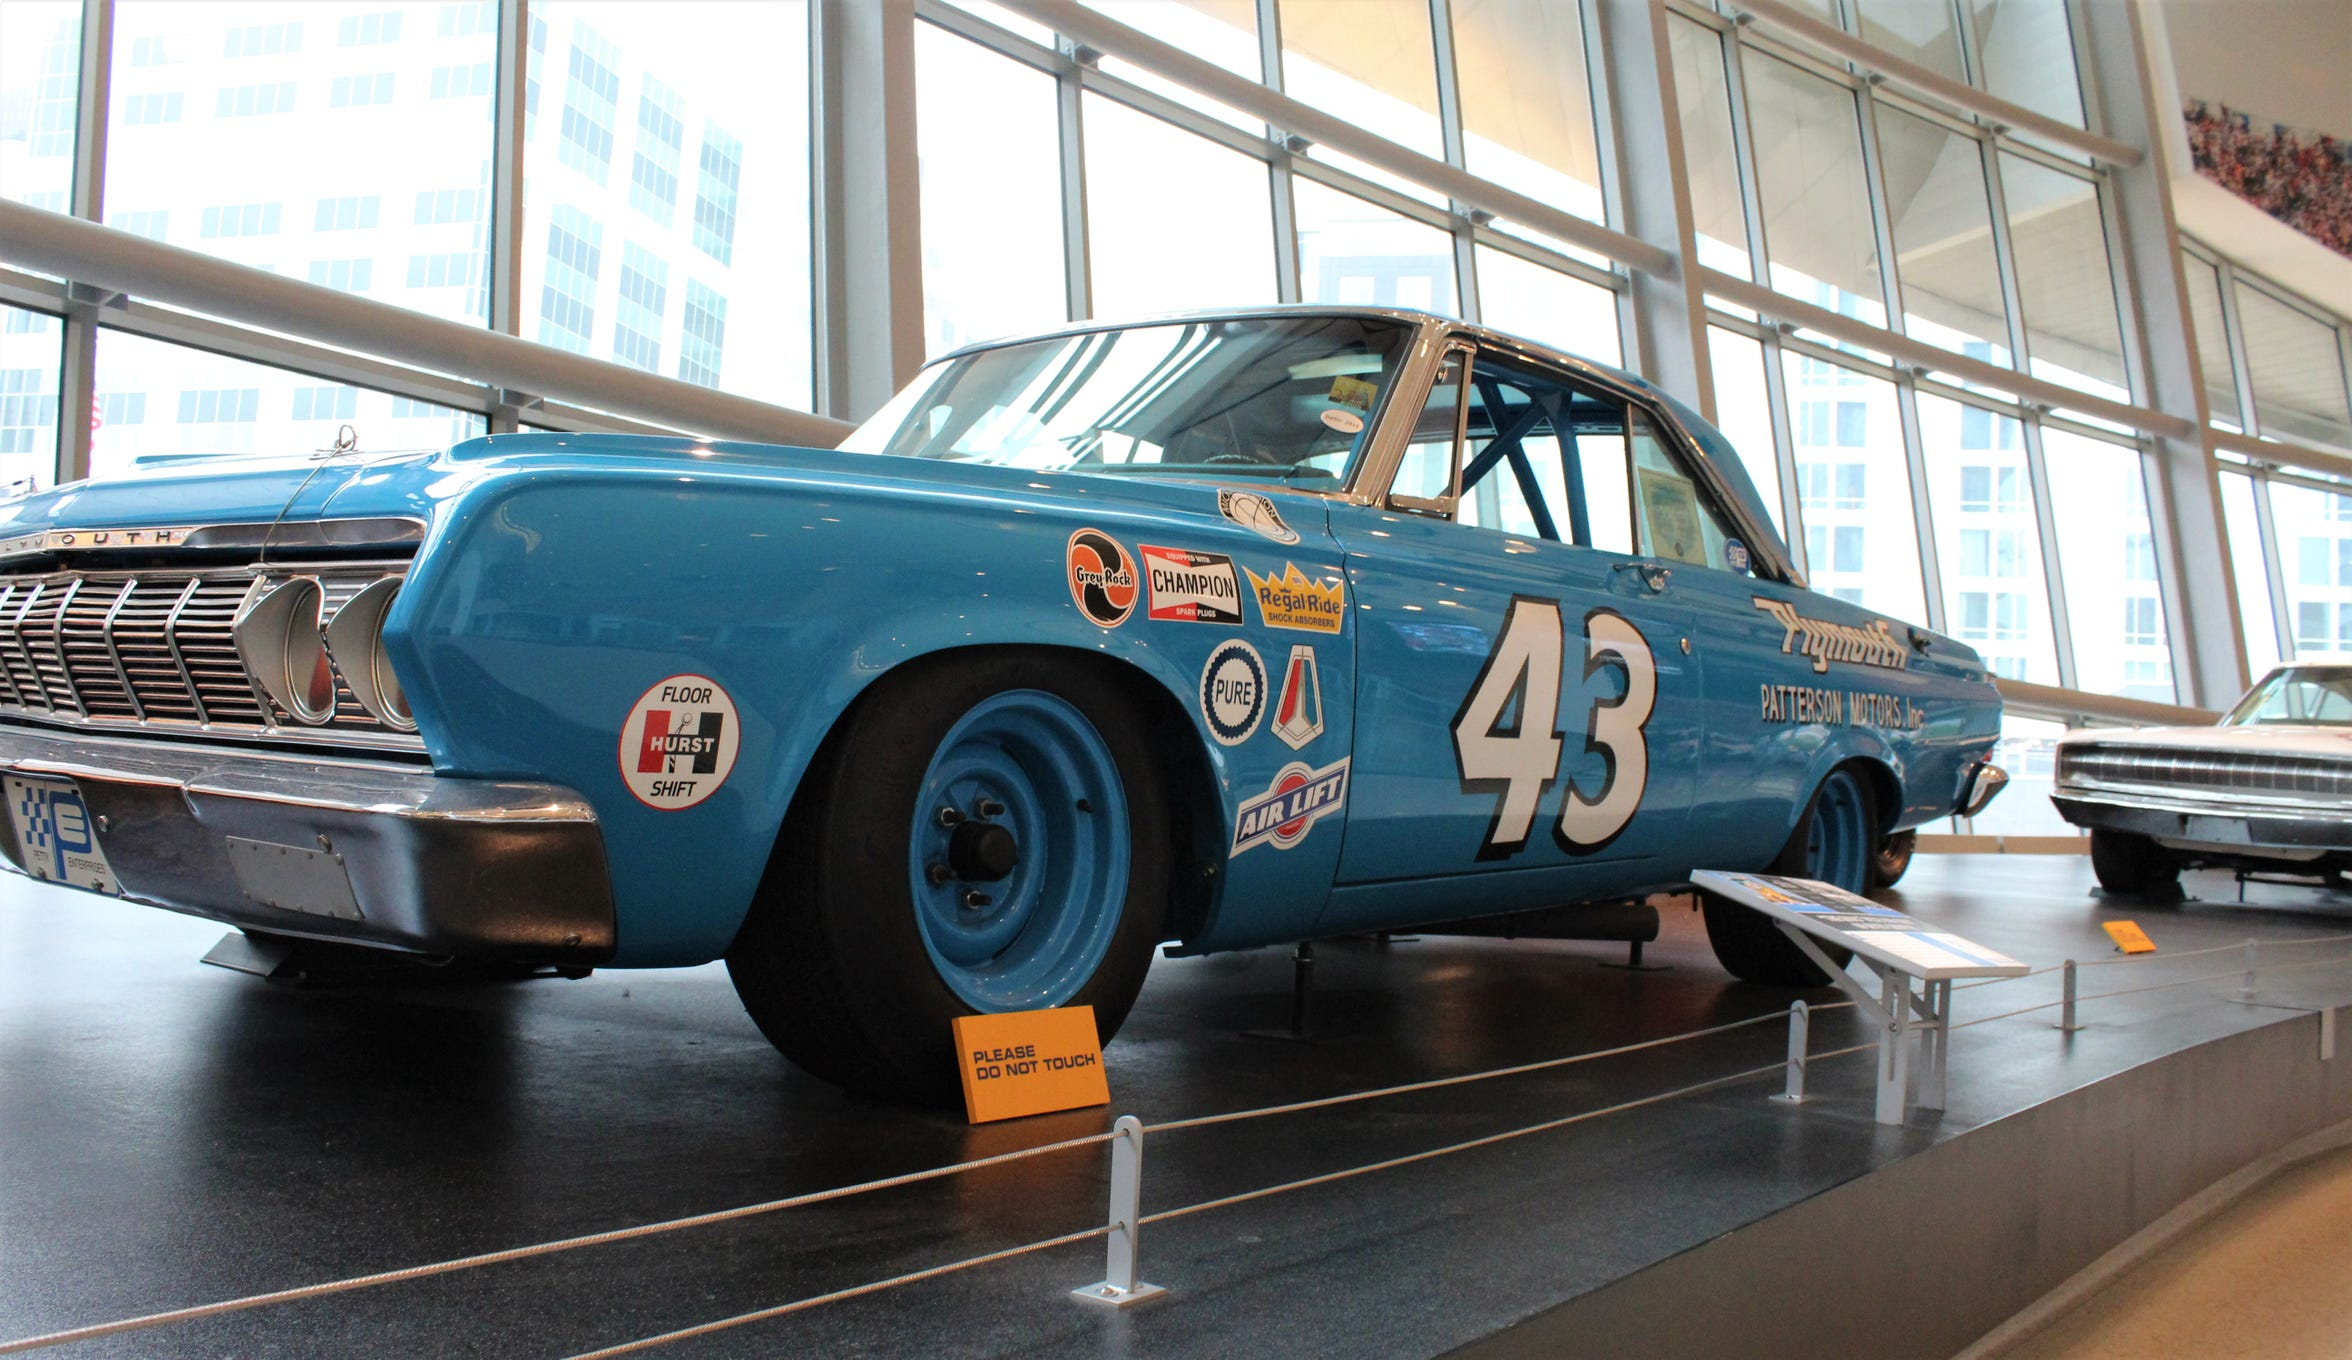 In 1967, Richard Petty won 27 of 48 NASCAR races, including a record 10 straight. His Plymouth Belvedere is displayed at the NASCAR Hall of Fame in Charlotte, N.C.